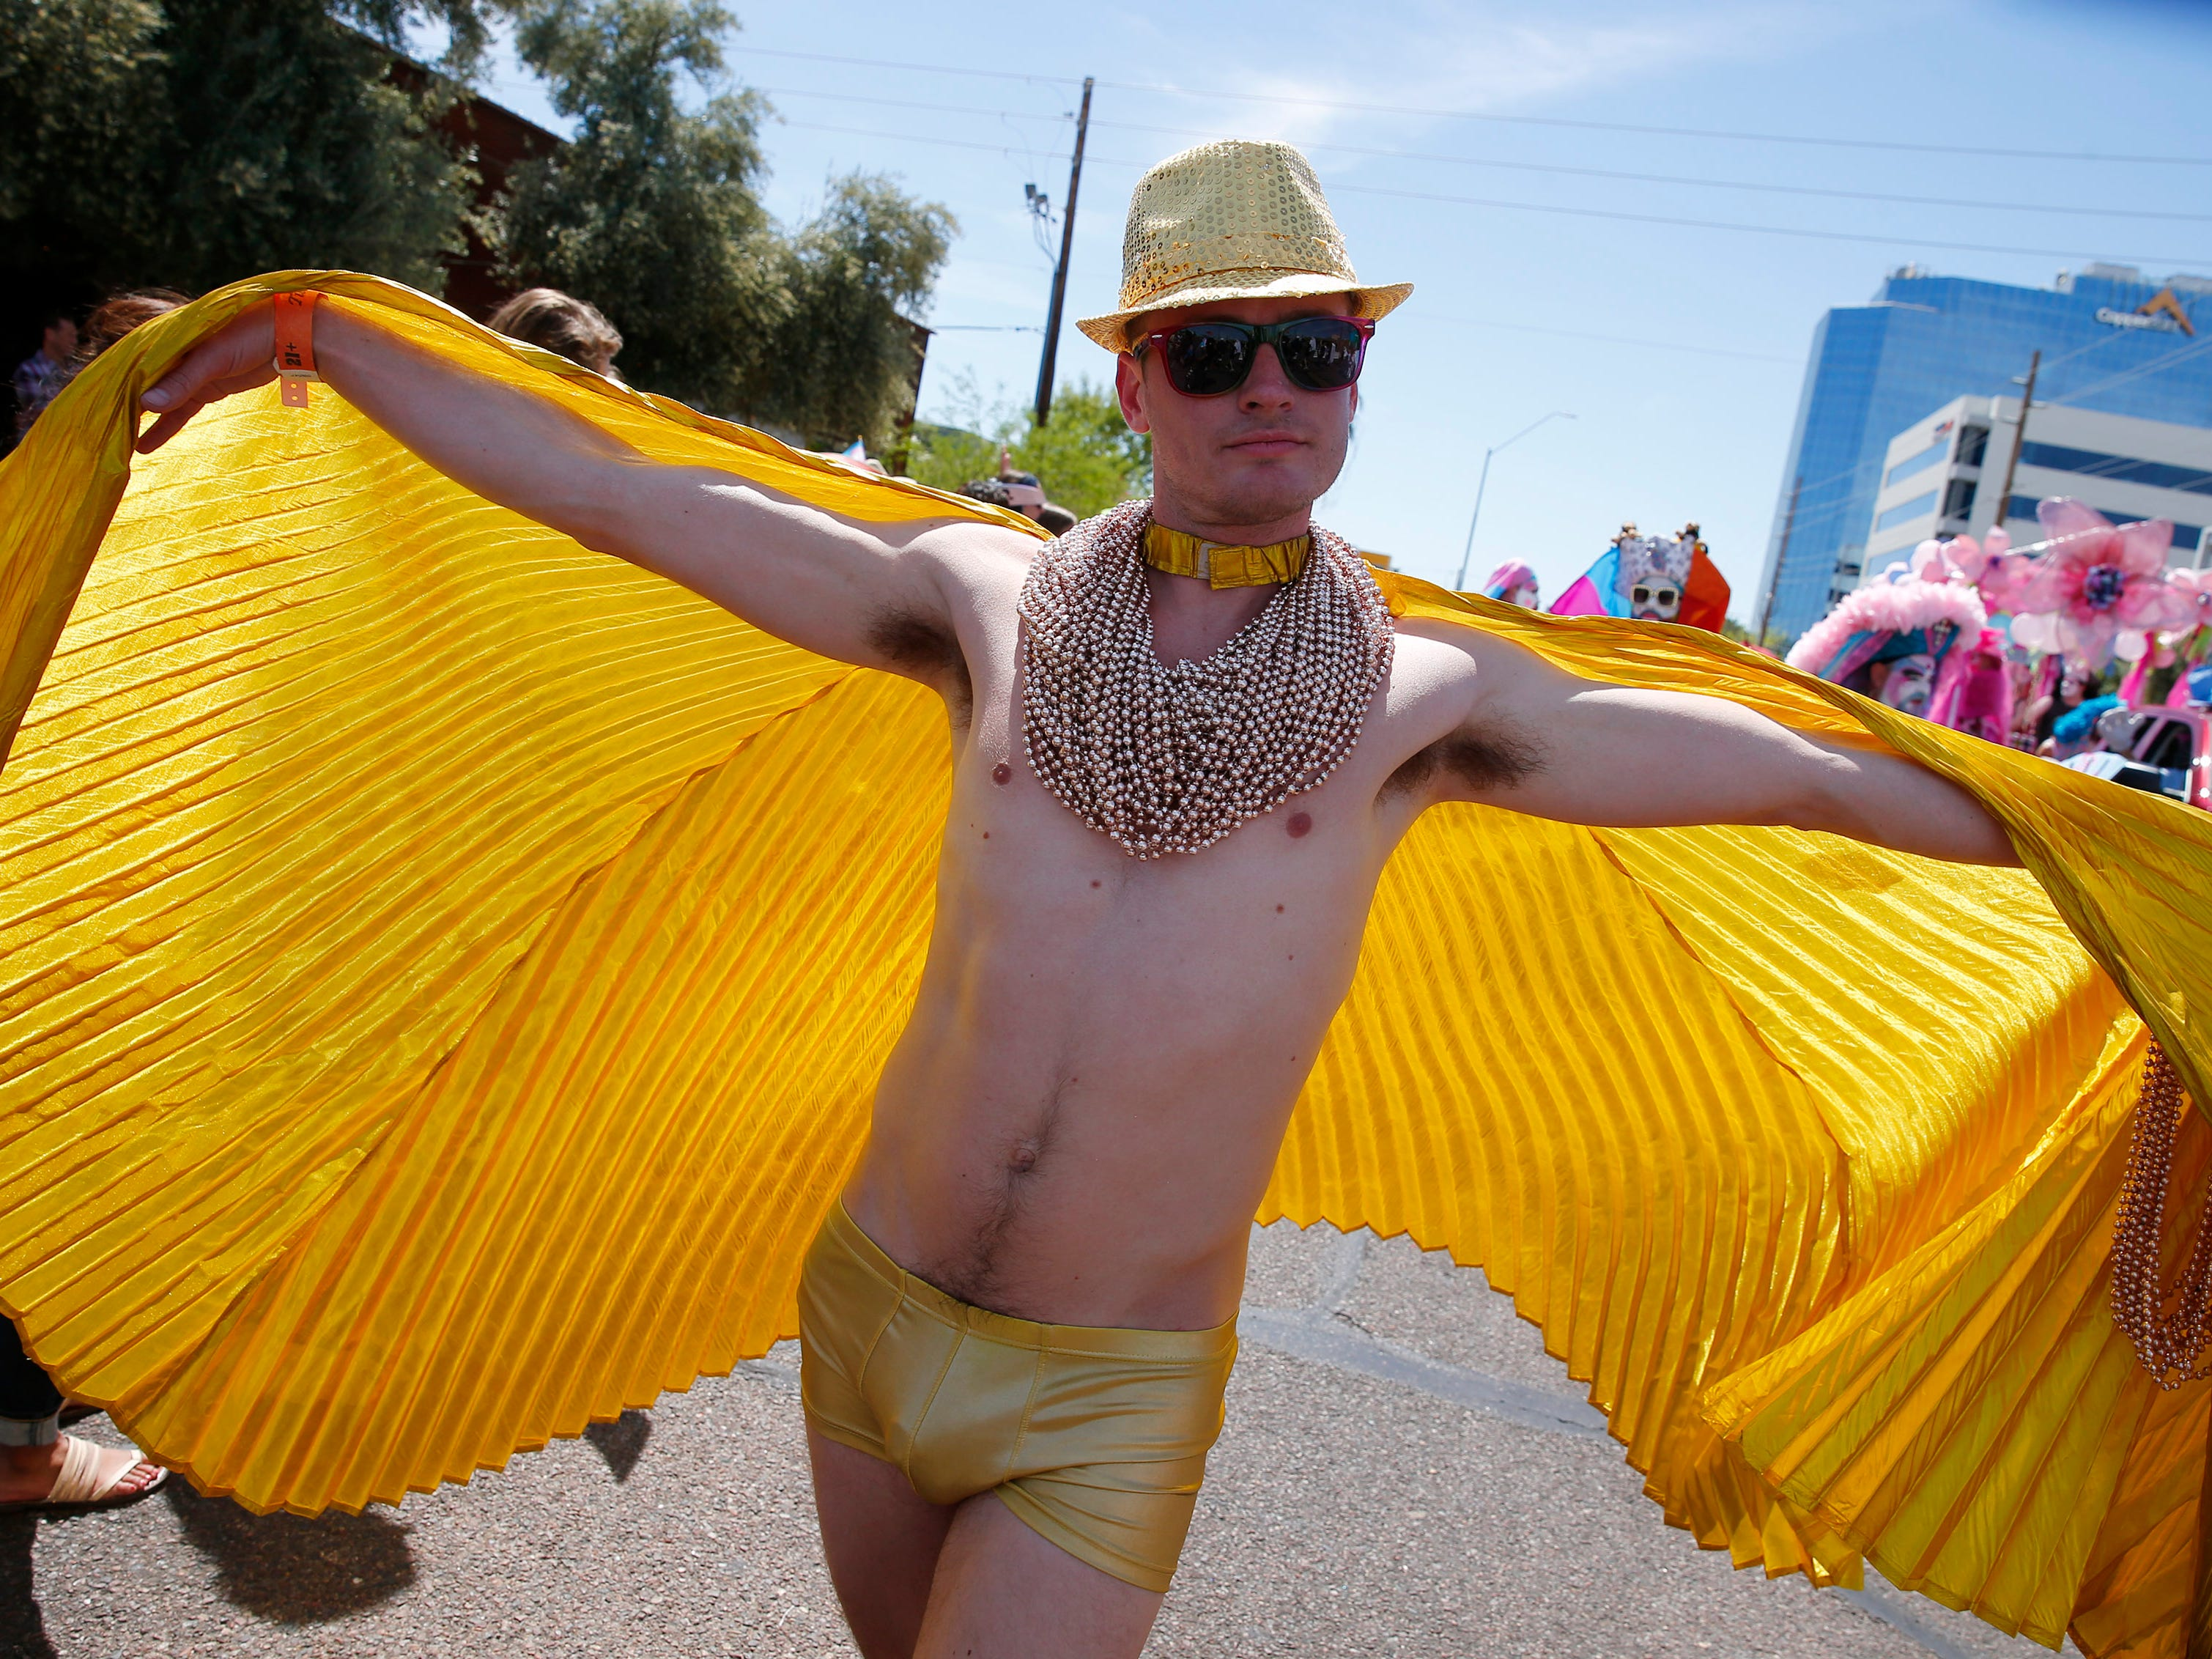 A member of the Grand Canyon Sisters of Perpetual Indulgence march during the Phoenix Pride Parade on April 7, 2019.